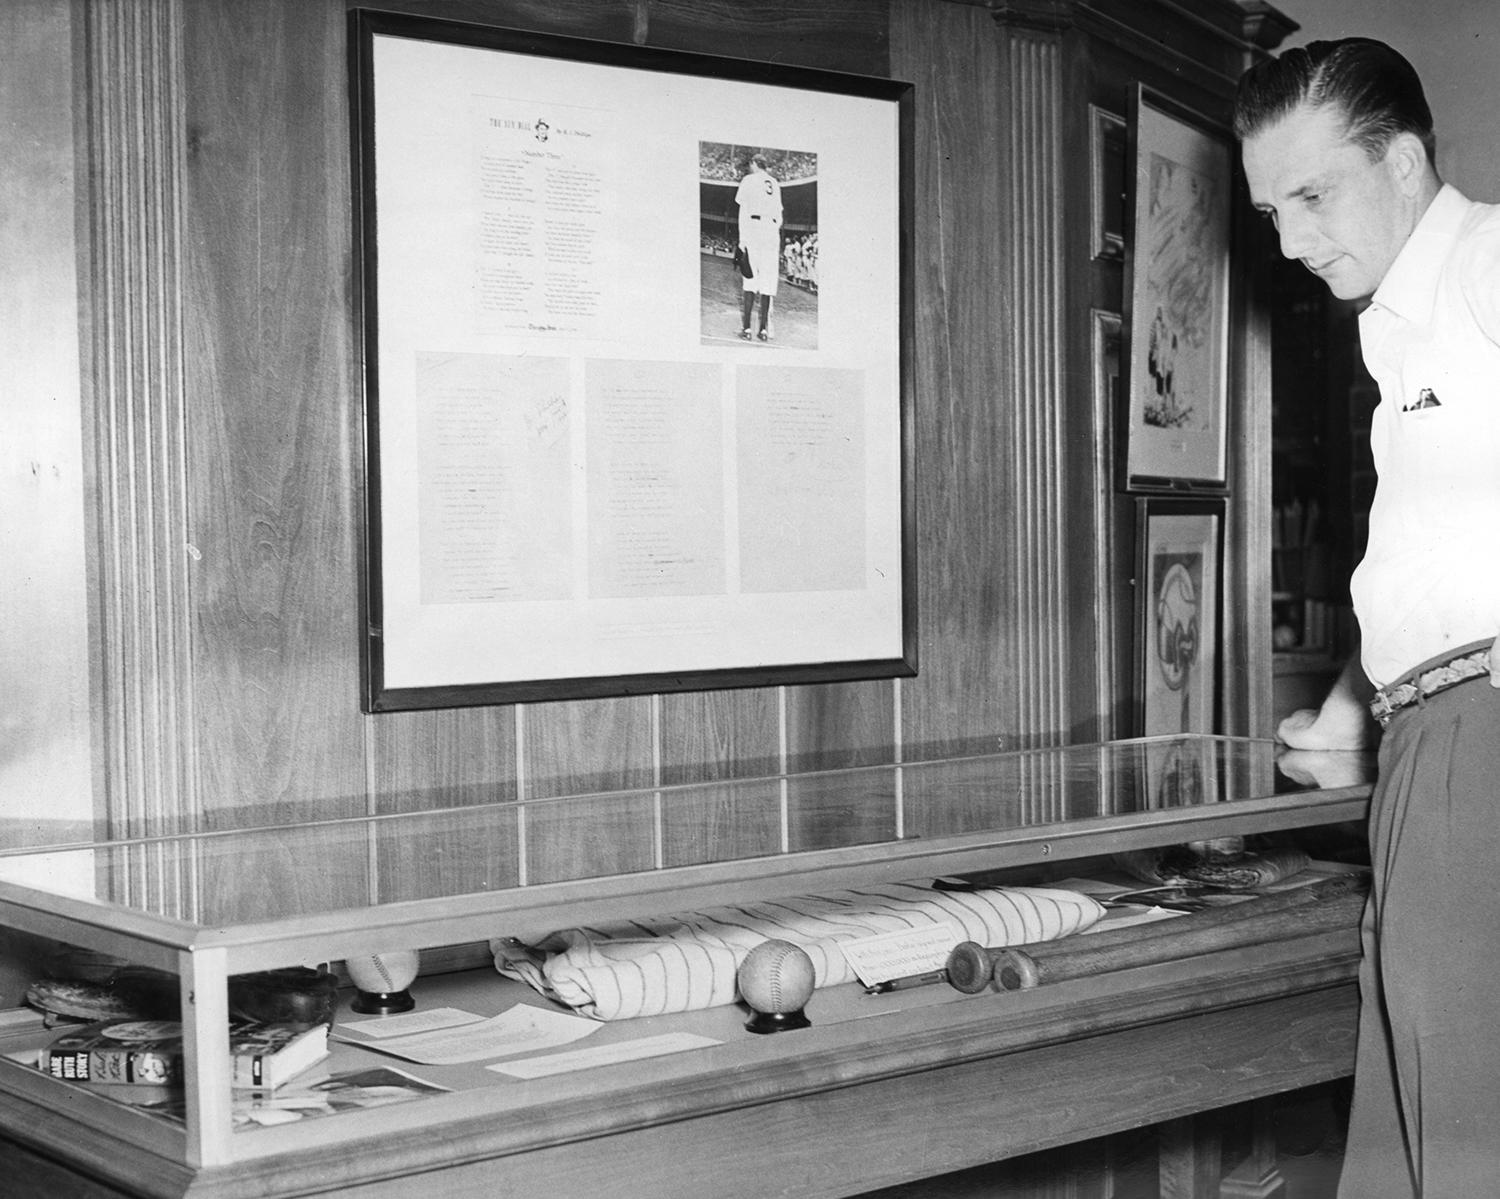 Future Hall of Famer Ralph Kiner looks at an exhibit case in the Museum in 1949, just three years after his MLB debut. (National Baseball Hall of Fame and Museum)